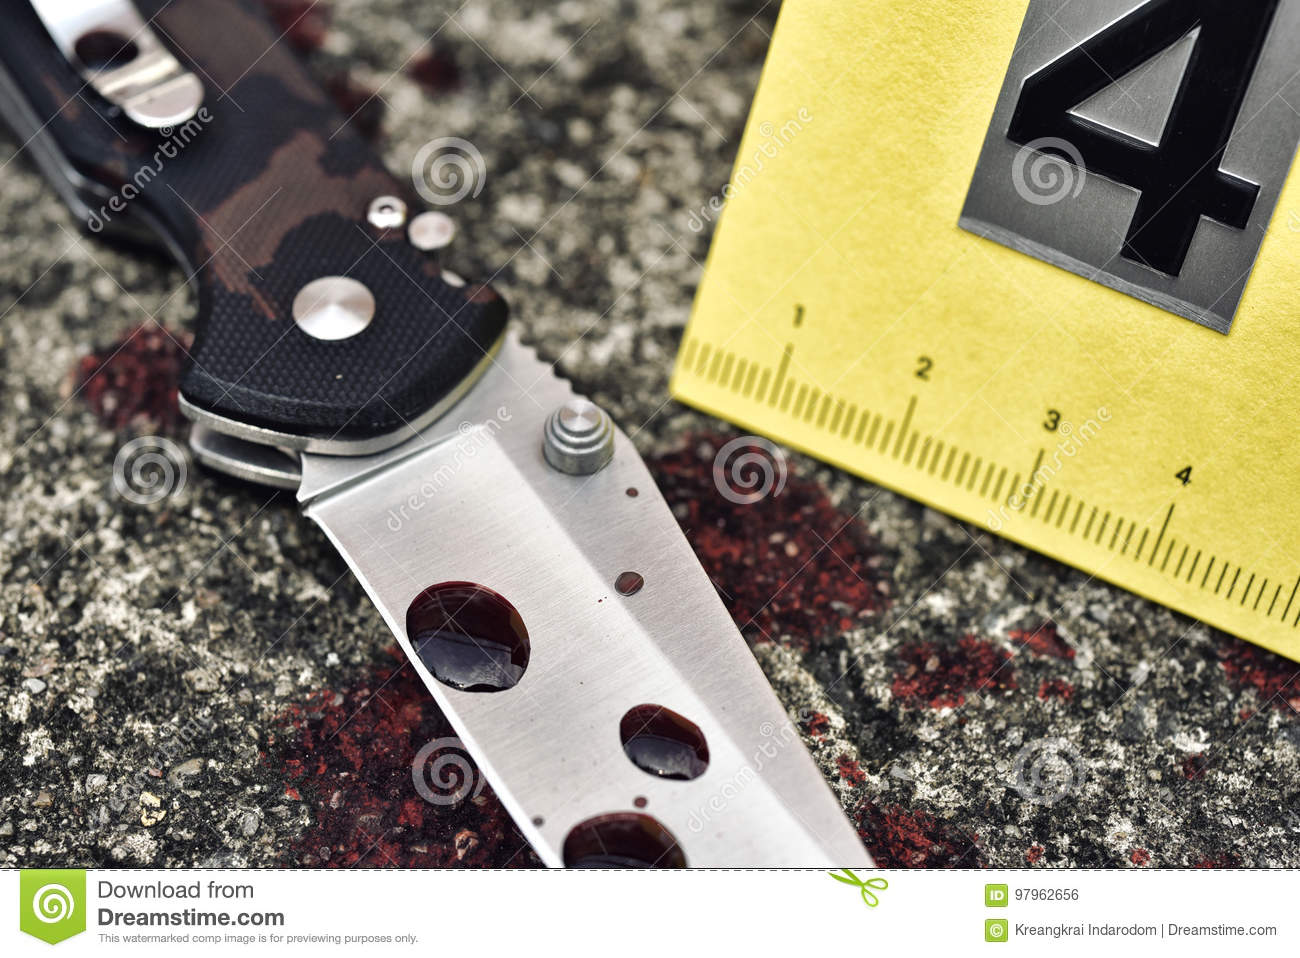 Crime scene investigation, Bloody knife and victim`s shoes with criminal markers on ground, Homicide evidence.